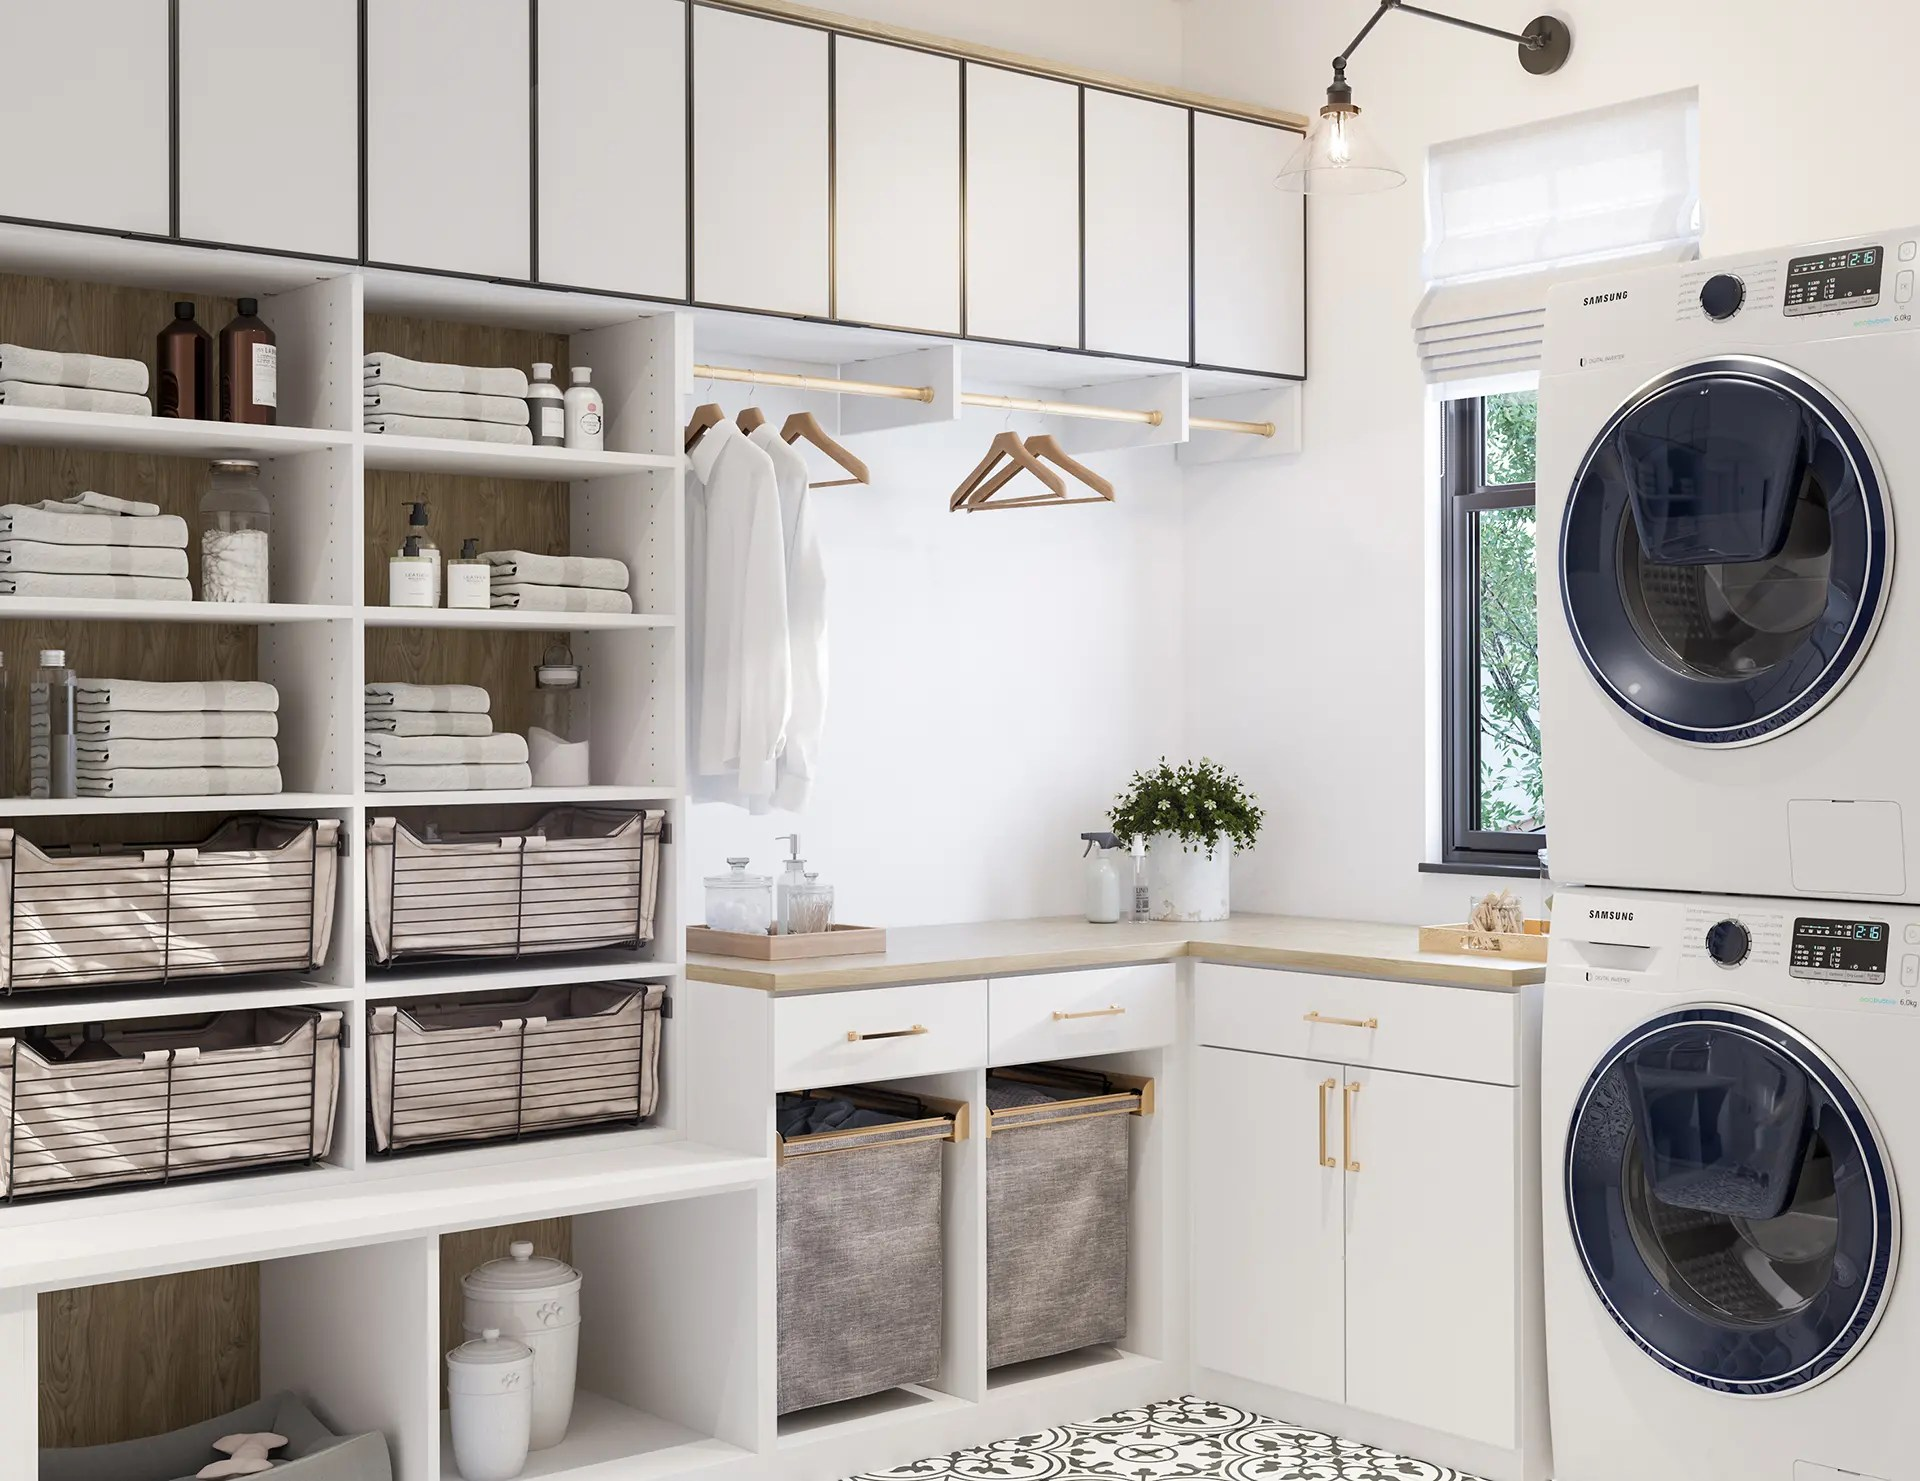 Laundry Room Cabinets & Storage Ideas by California Closets on Laundry Cabinets Ideas  id=74549